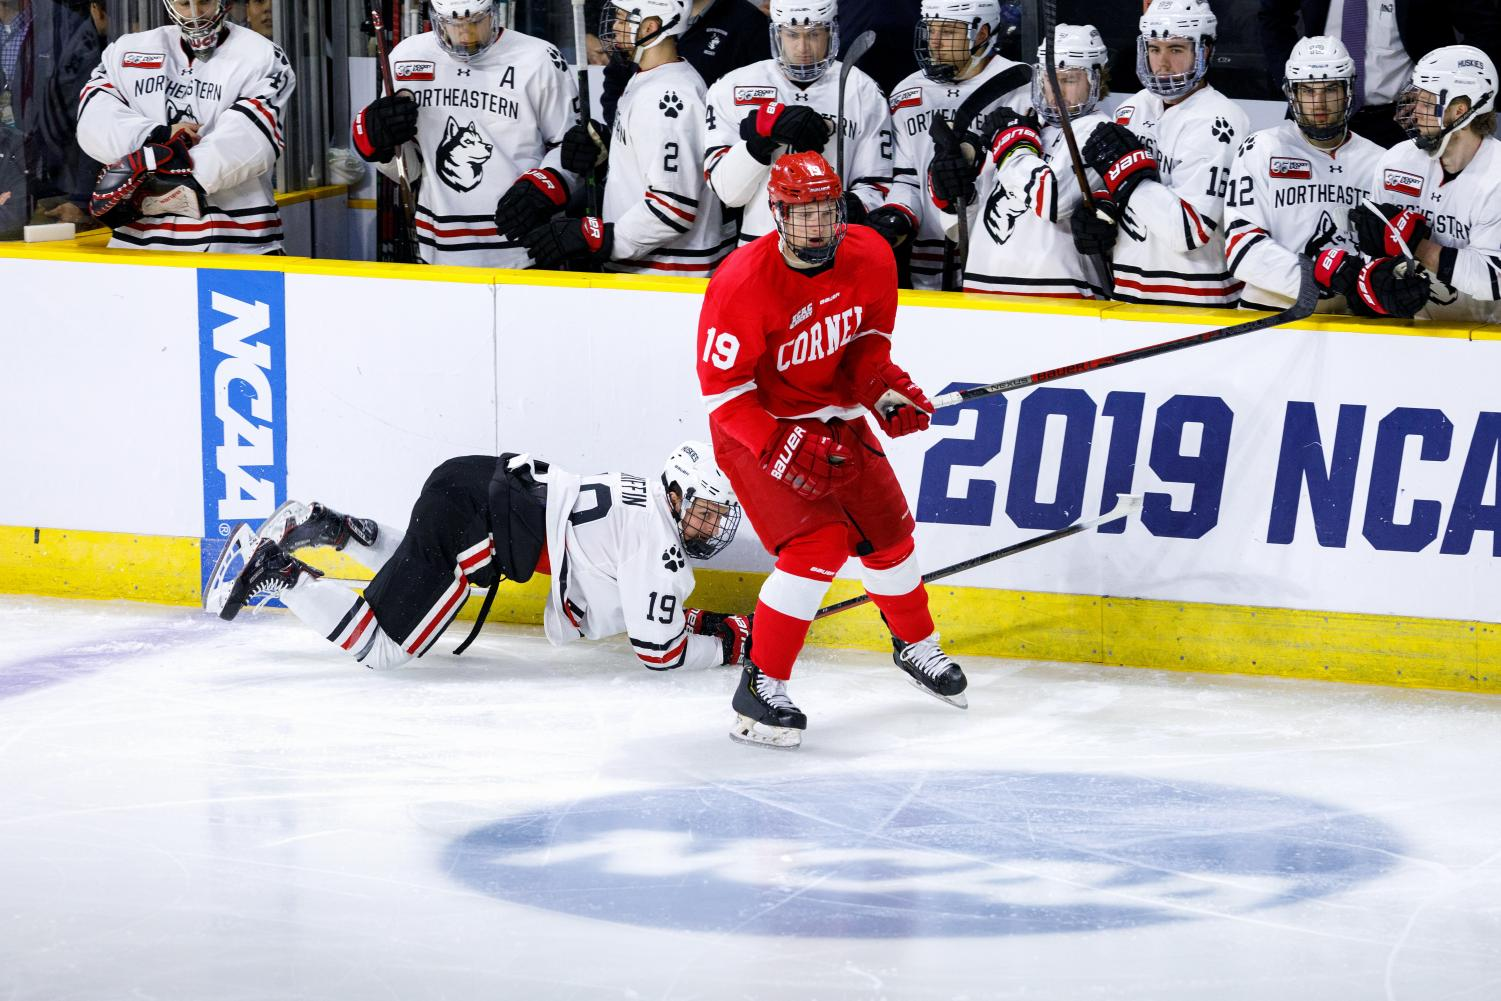 Lincoln Griffin loses his footing in front of the NU bench Saturday as the Huskies lost, 5-1 to Cornell in the NCAA Tournament.